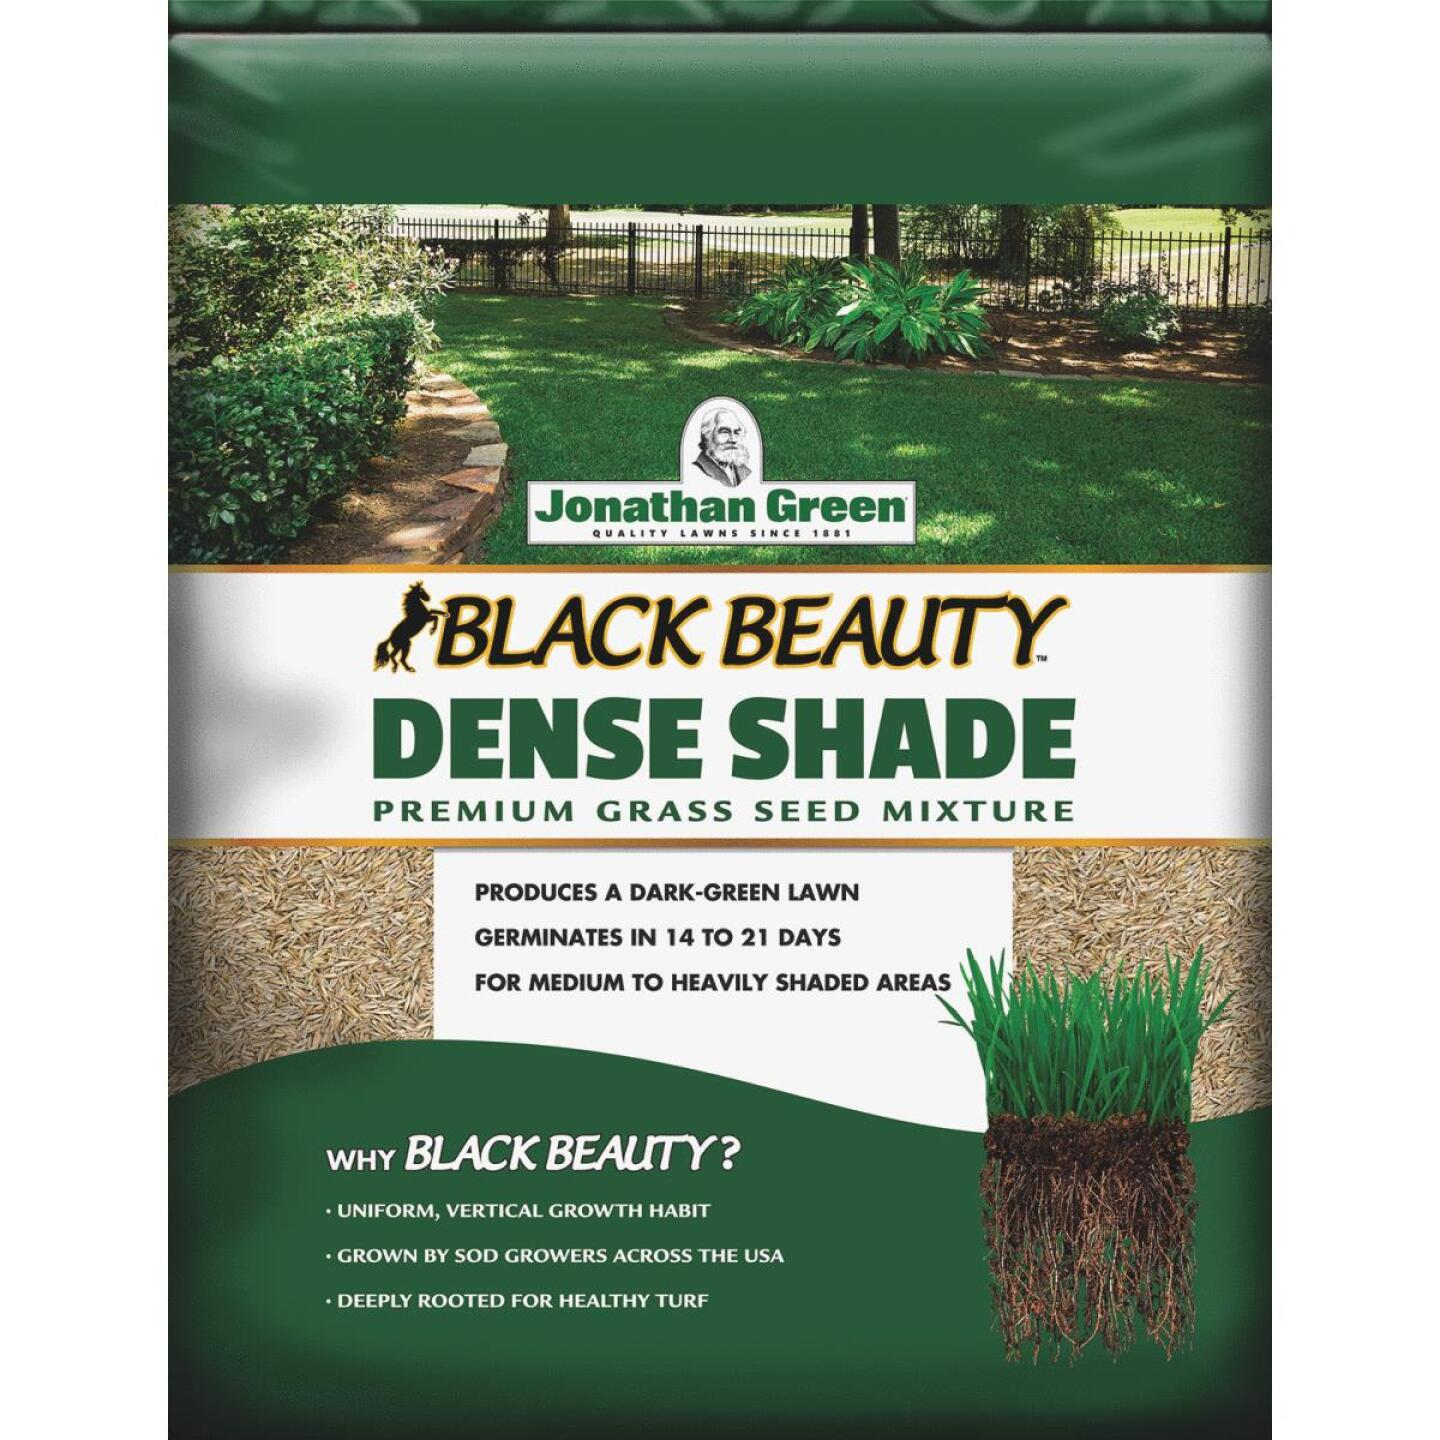 Jonathan Green Black Beauty 3 Lb. 900 Sq. Ft. Coverage Dense Shade Grass Seed Image 1